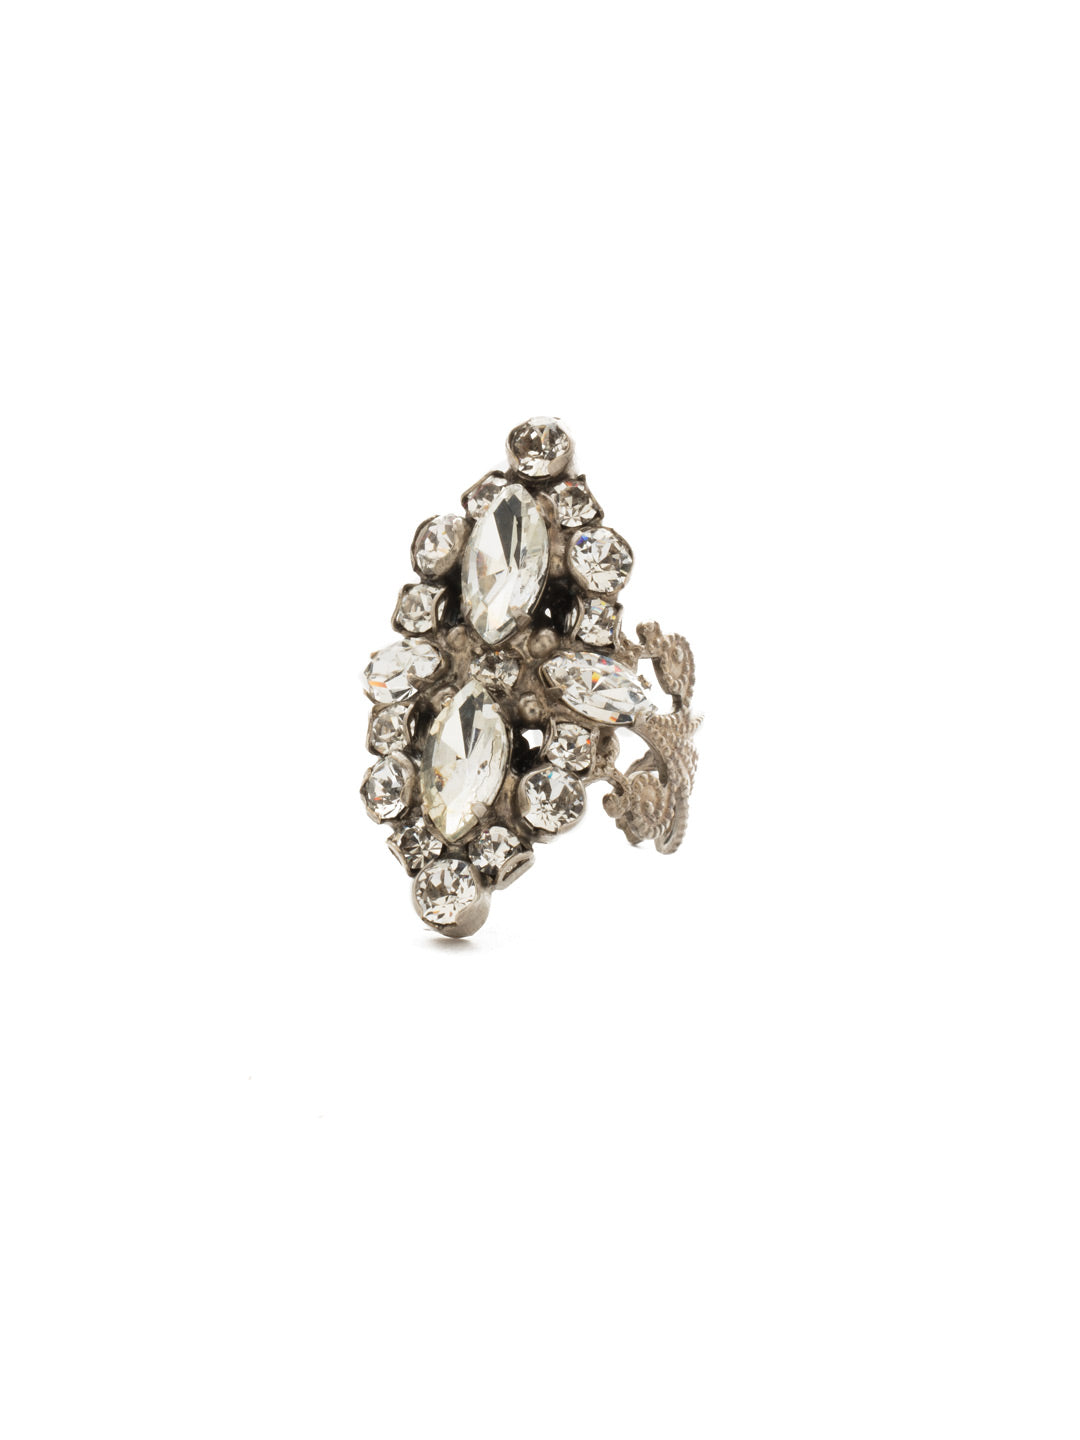 Edelweiss Ring - RDQ30ASCRY